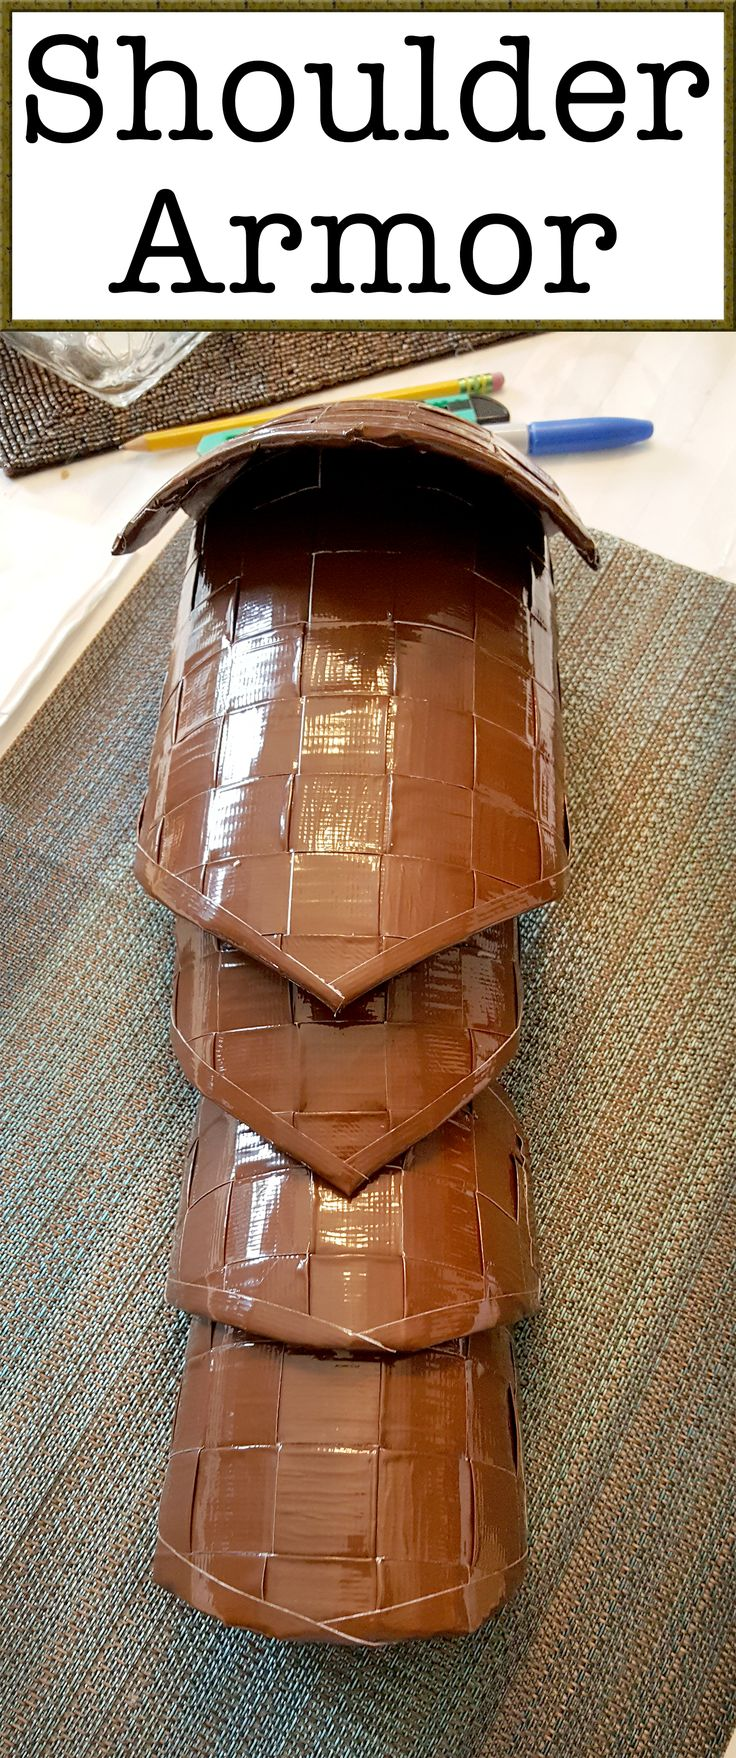 29 Best Images About Duct Tape Crafts On Pinterest